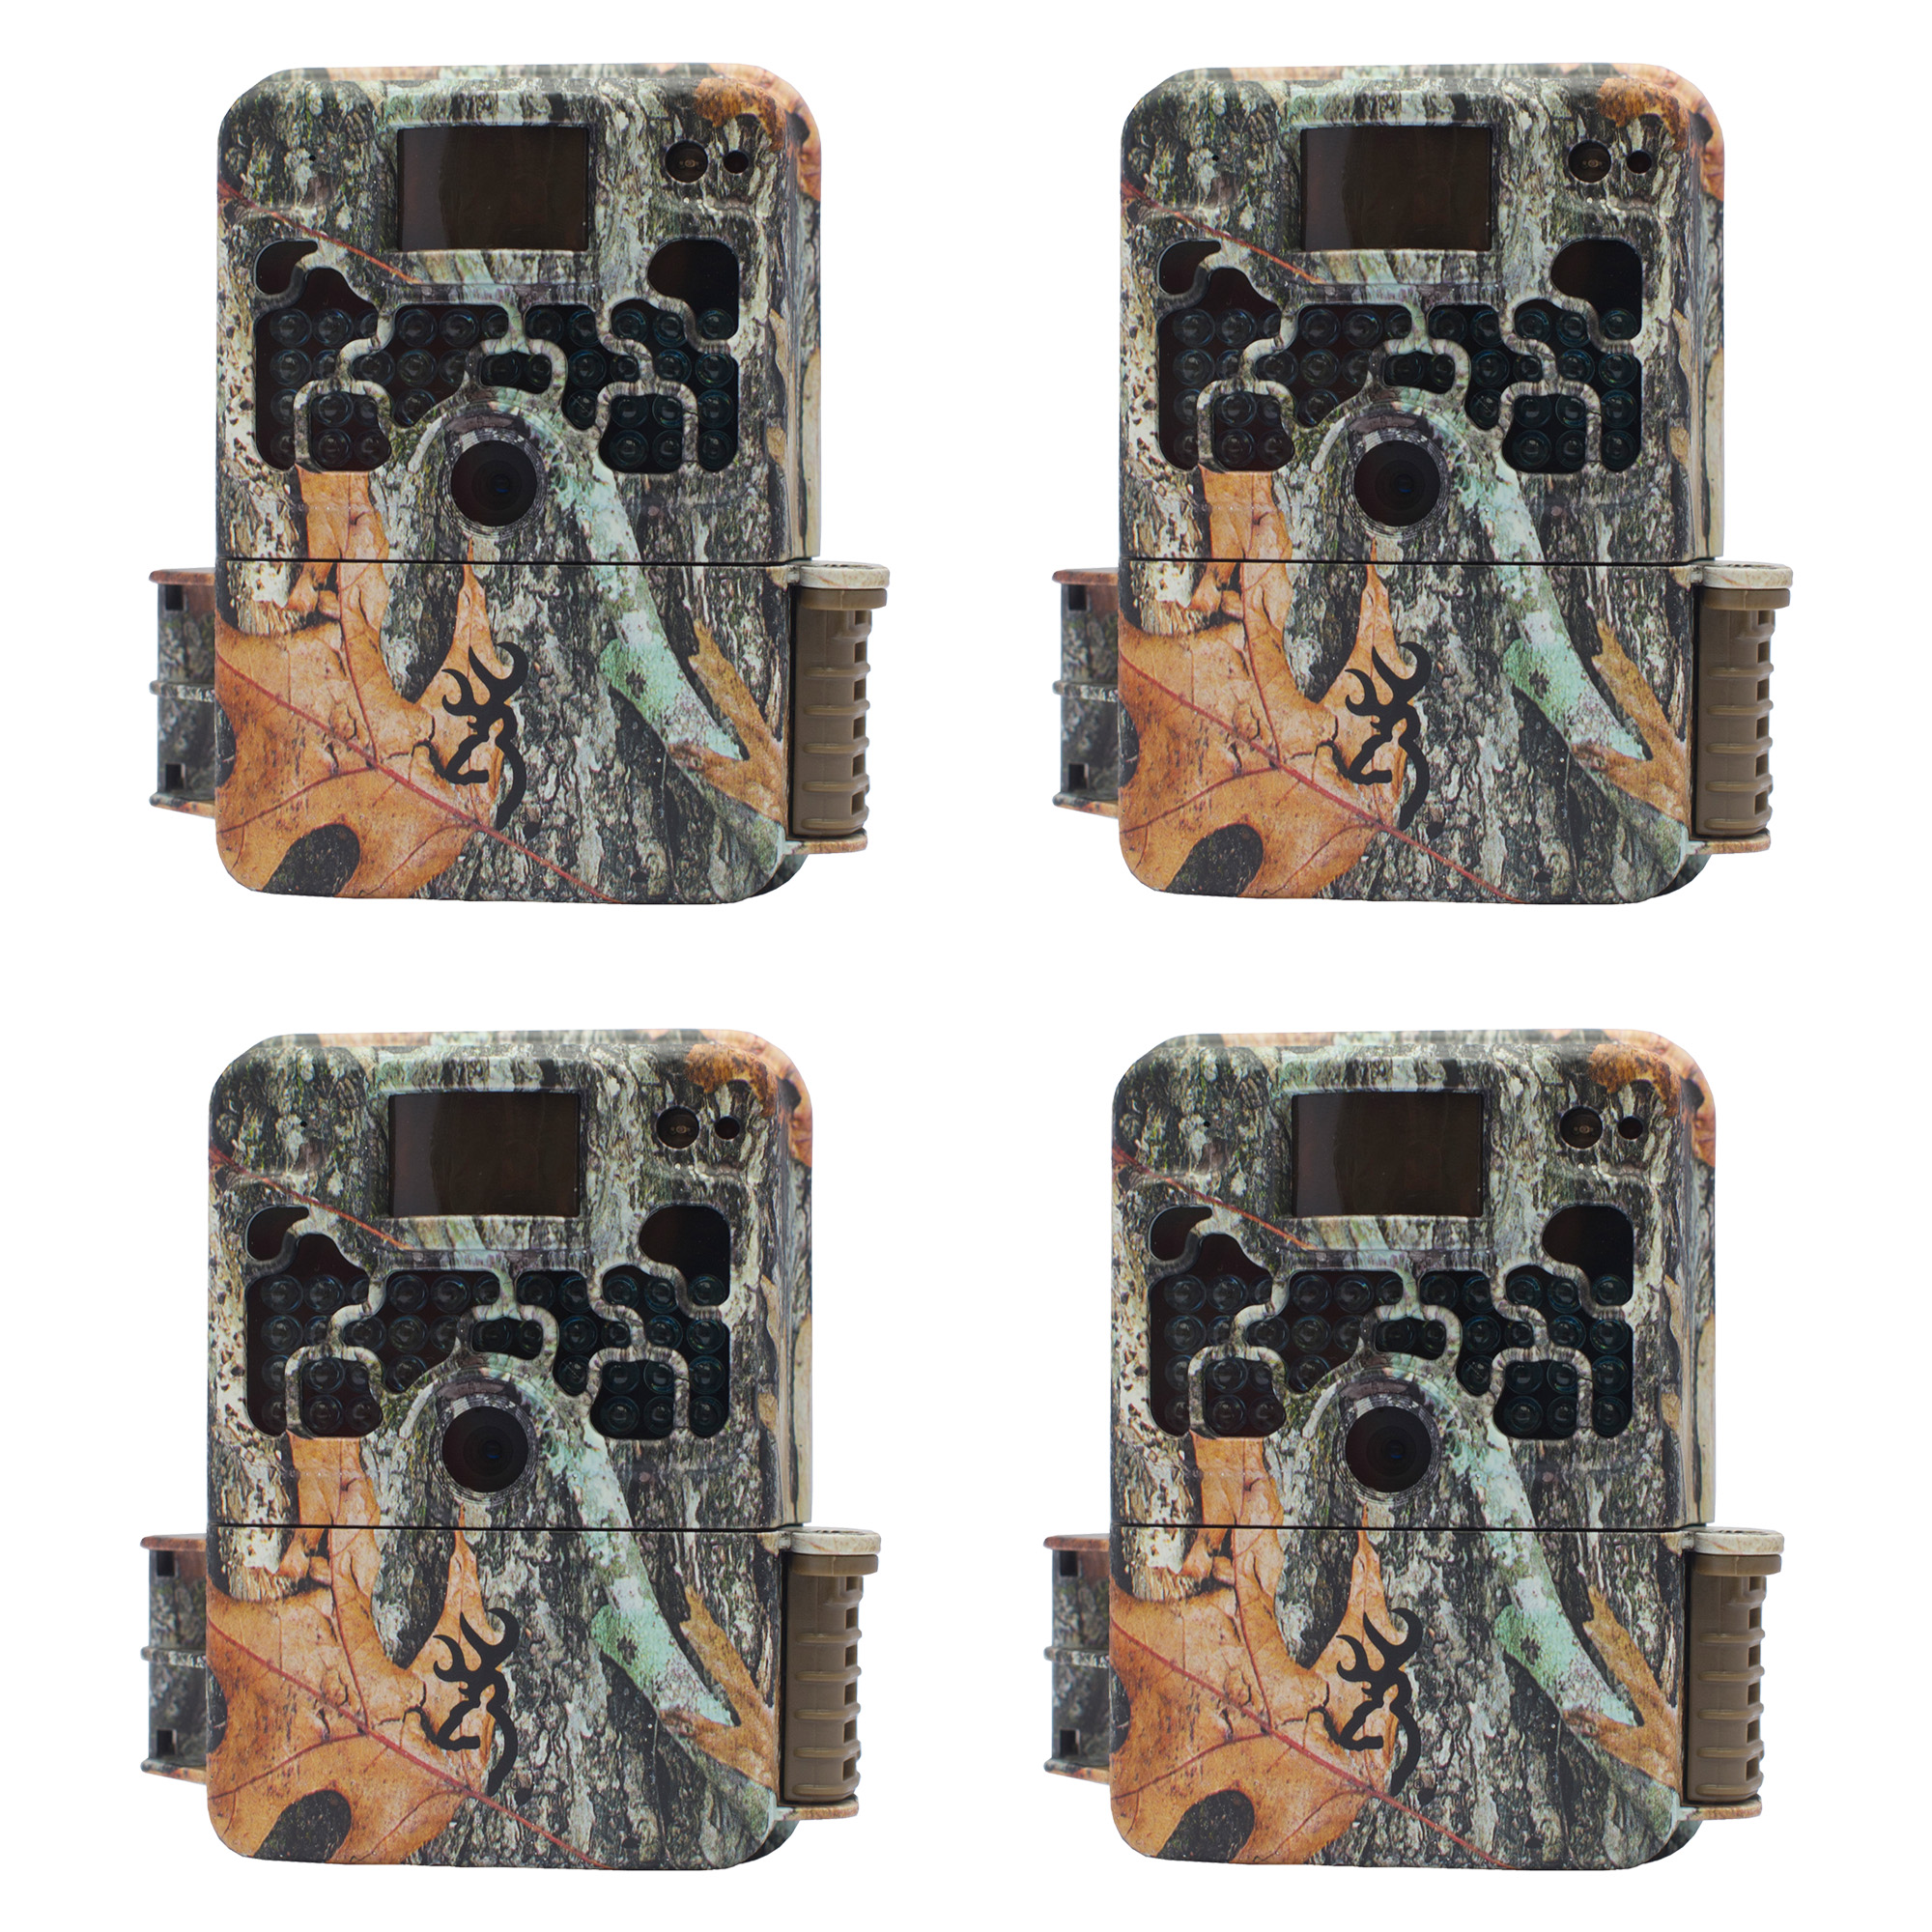 Browning Trail Cameras Strike Force 850 16MP Game Camera, 4 Pack | BTC-5HD-850 by Browning Trail Cameras